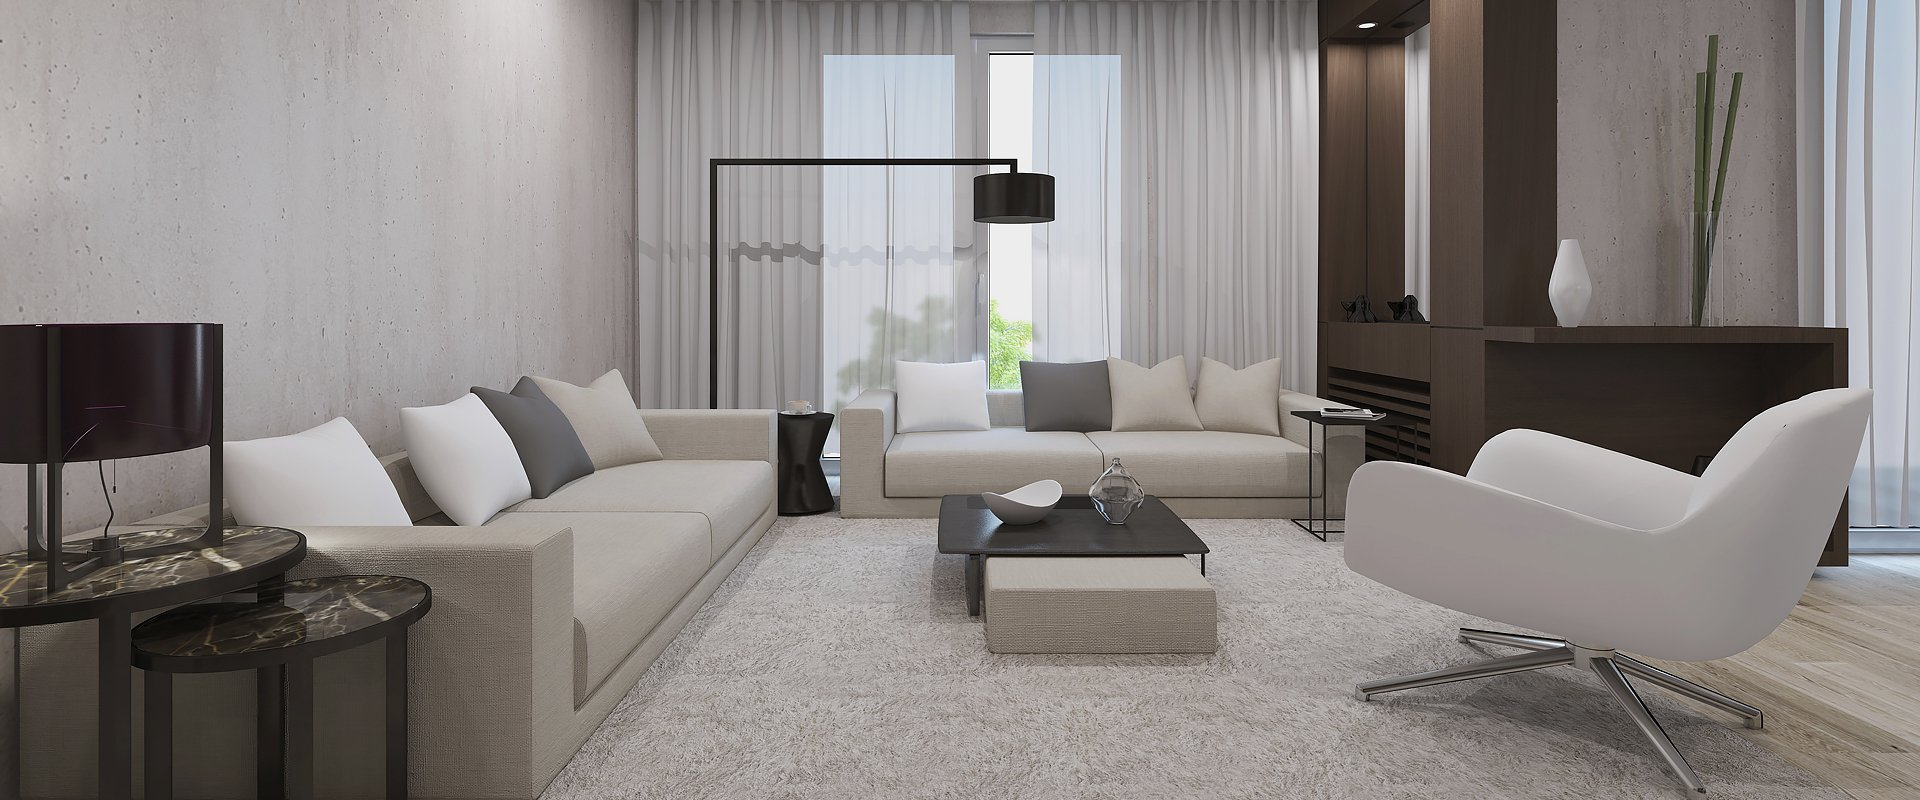 furnished property interiors